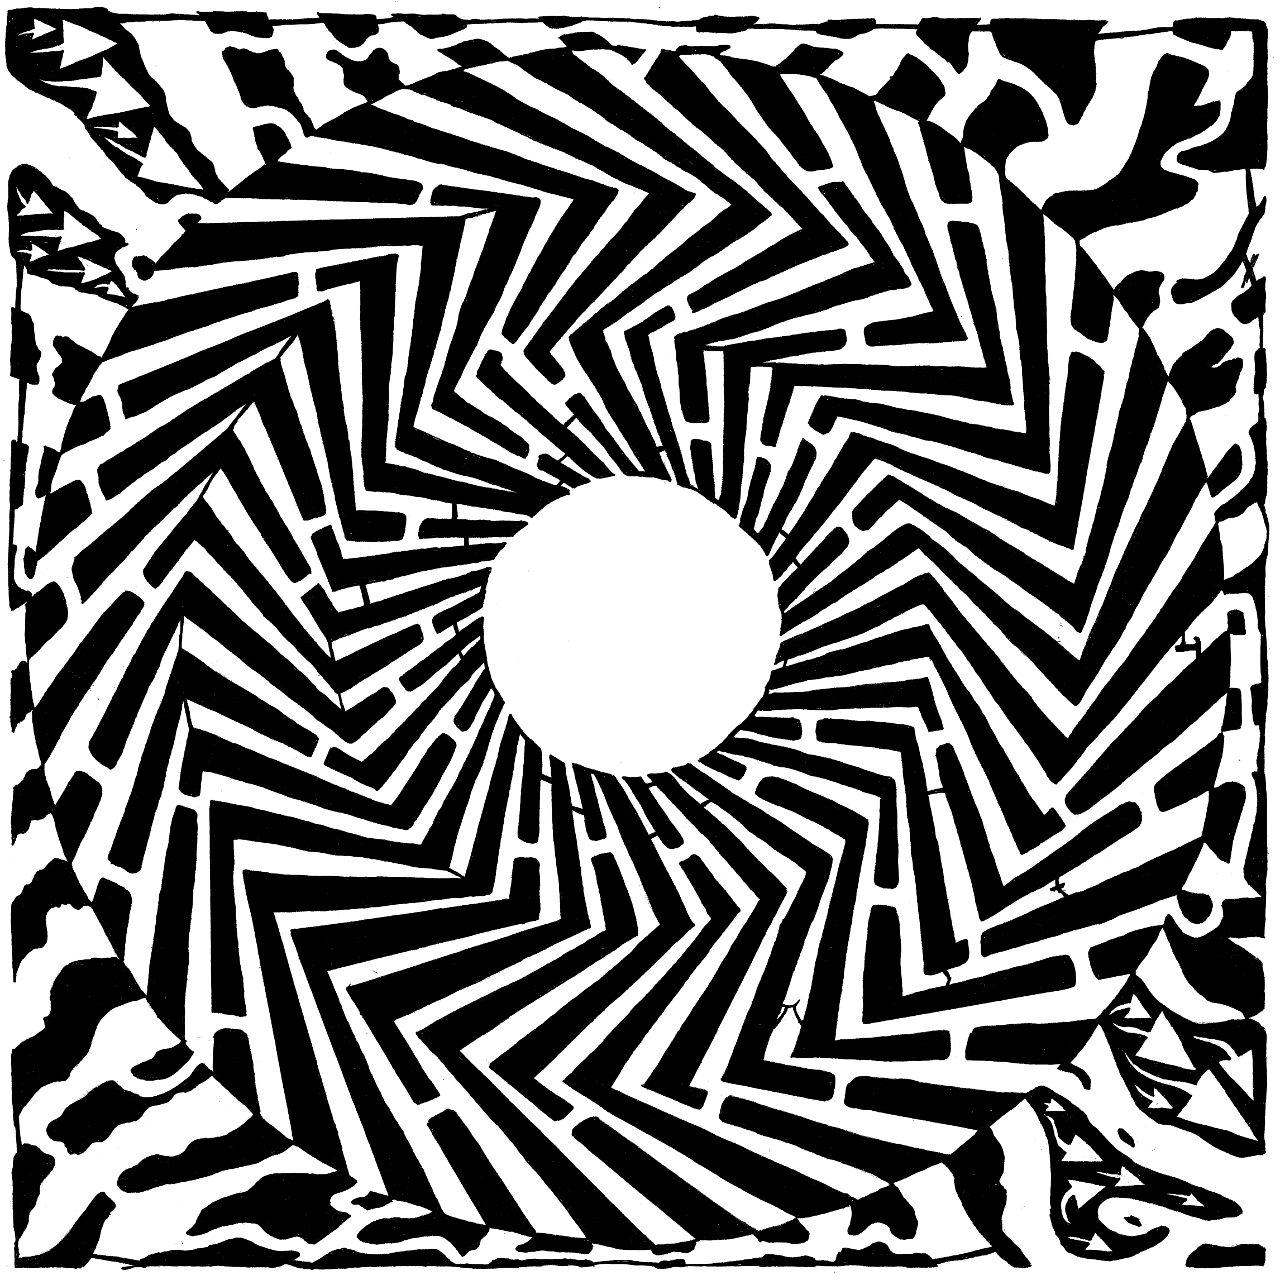 Optical Illusion clipart maze Illusion swirly Illusions yonatan frimer